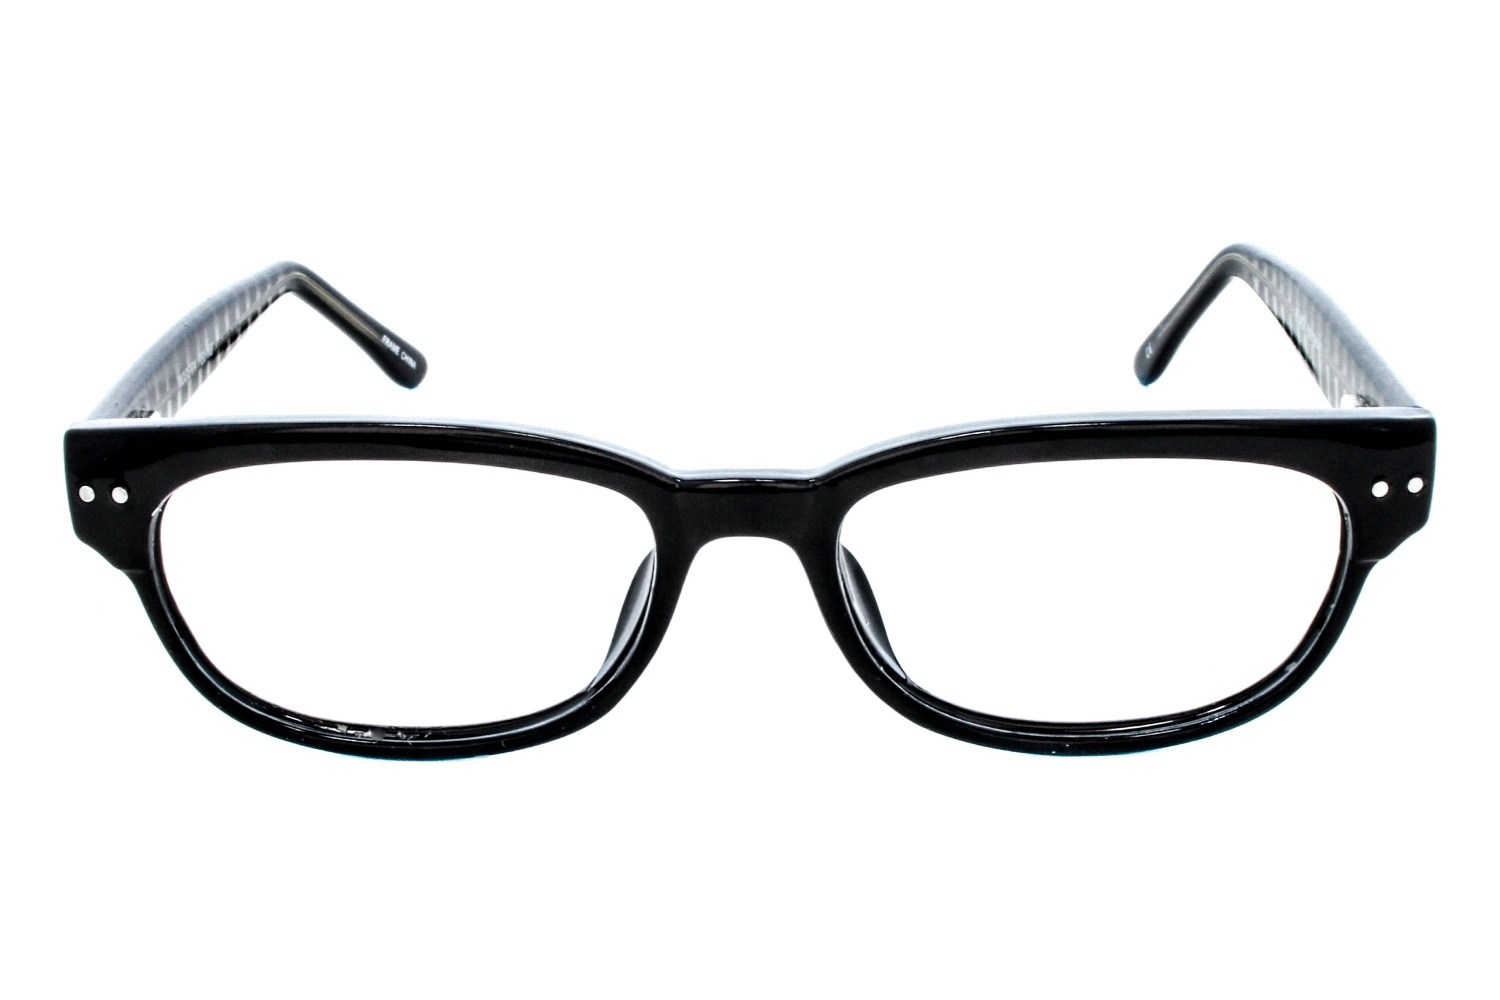 24e934480 Lunettos Lynx Eyeglasses- Black in 2019 | Products | Glasses frames ...